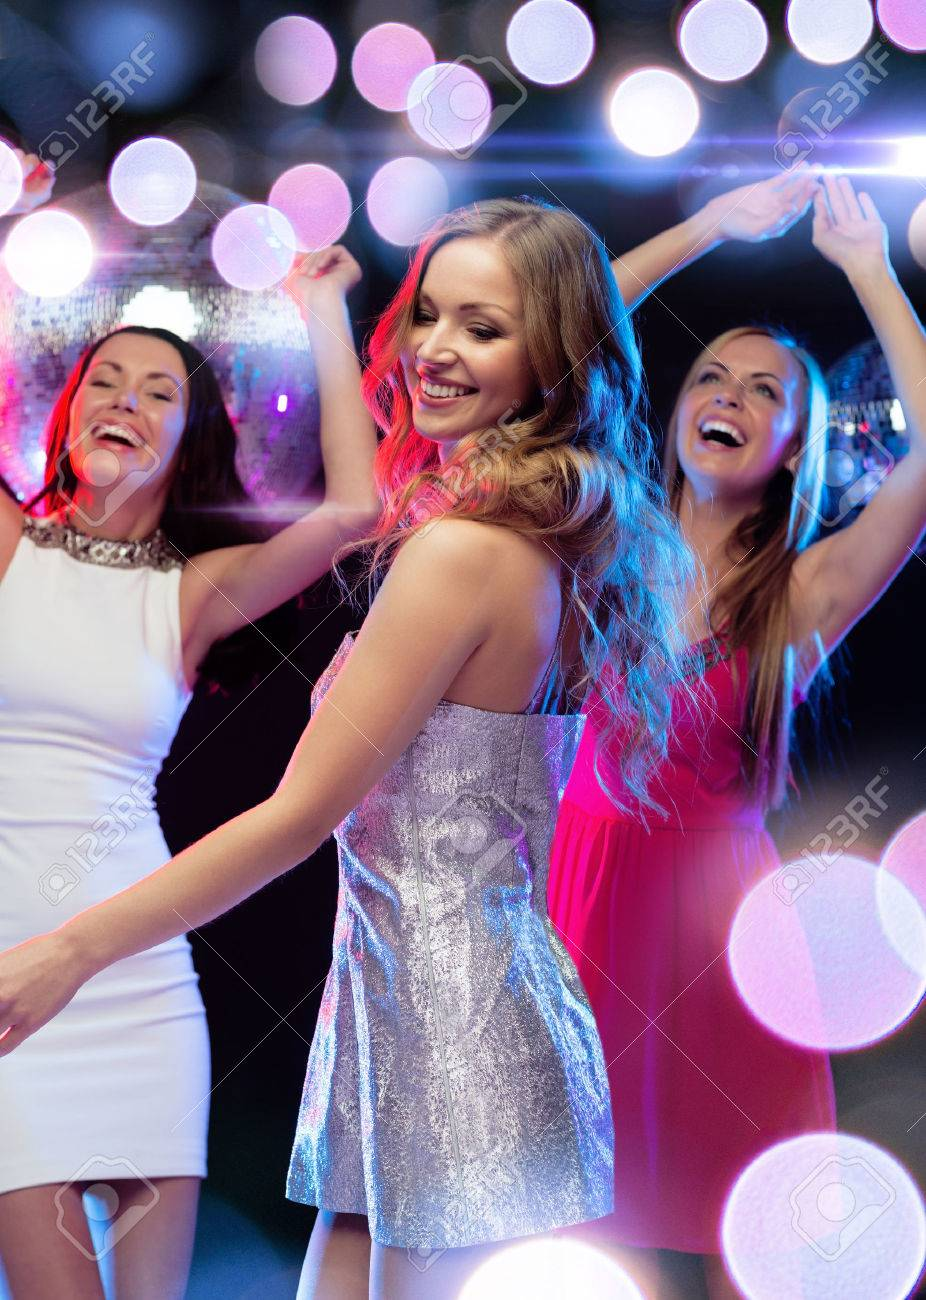 new year, celebration, friends, bachelorette party, birthday concept - three beautiful woman in evening dresses dancing in the club - 28653444